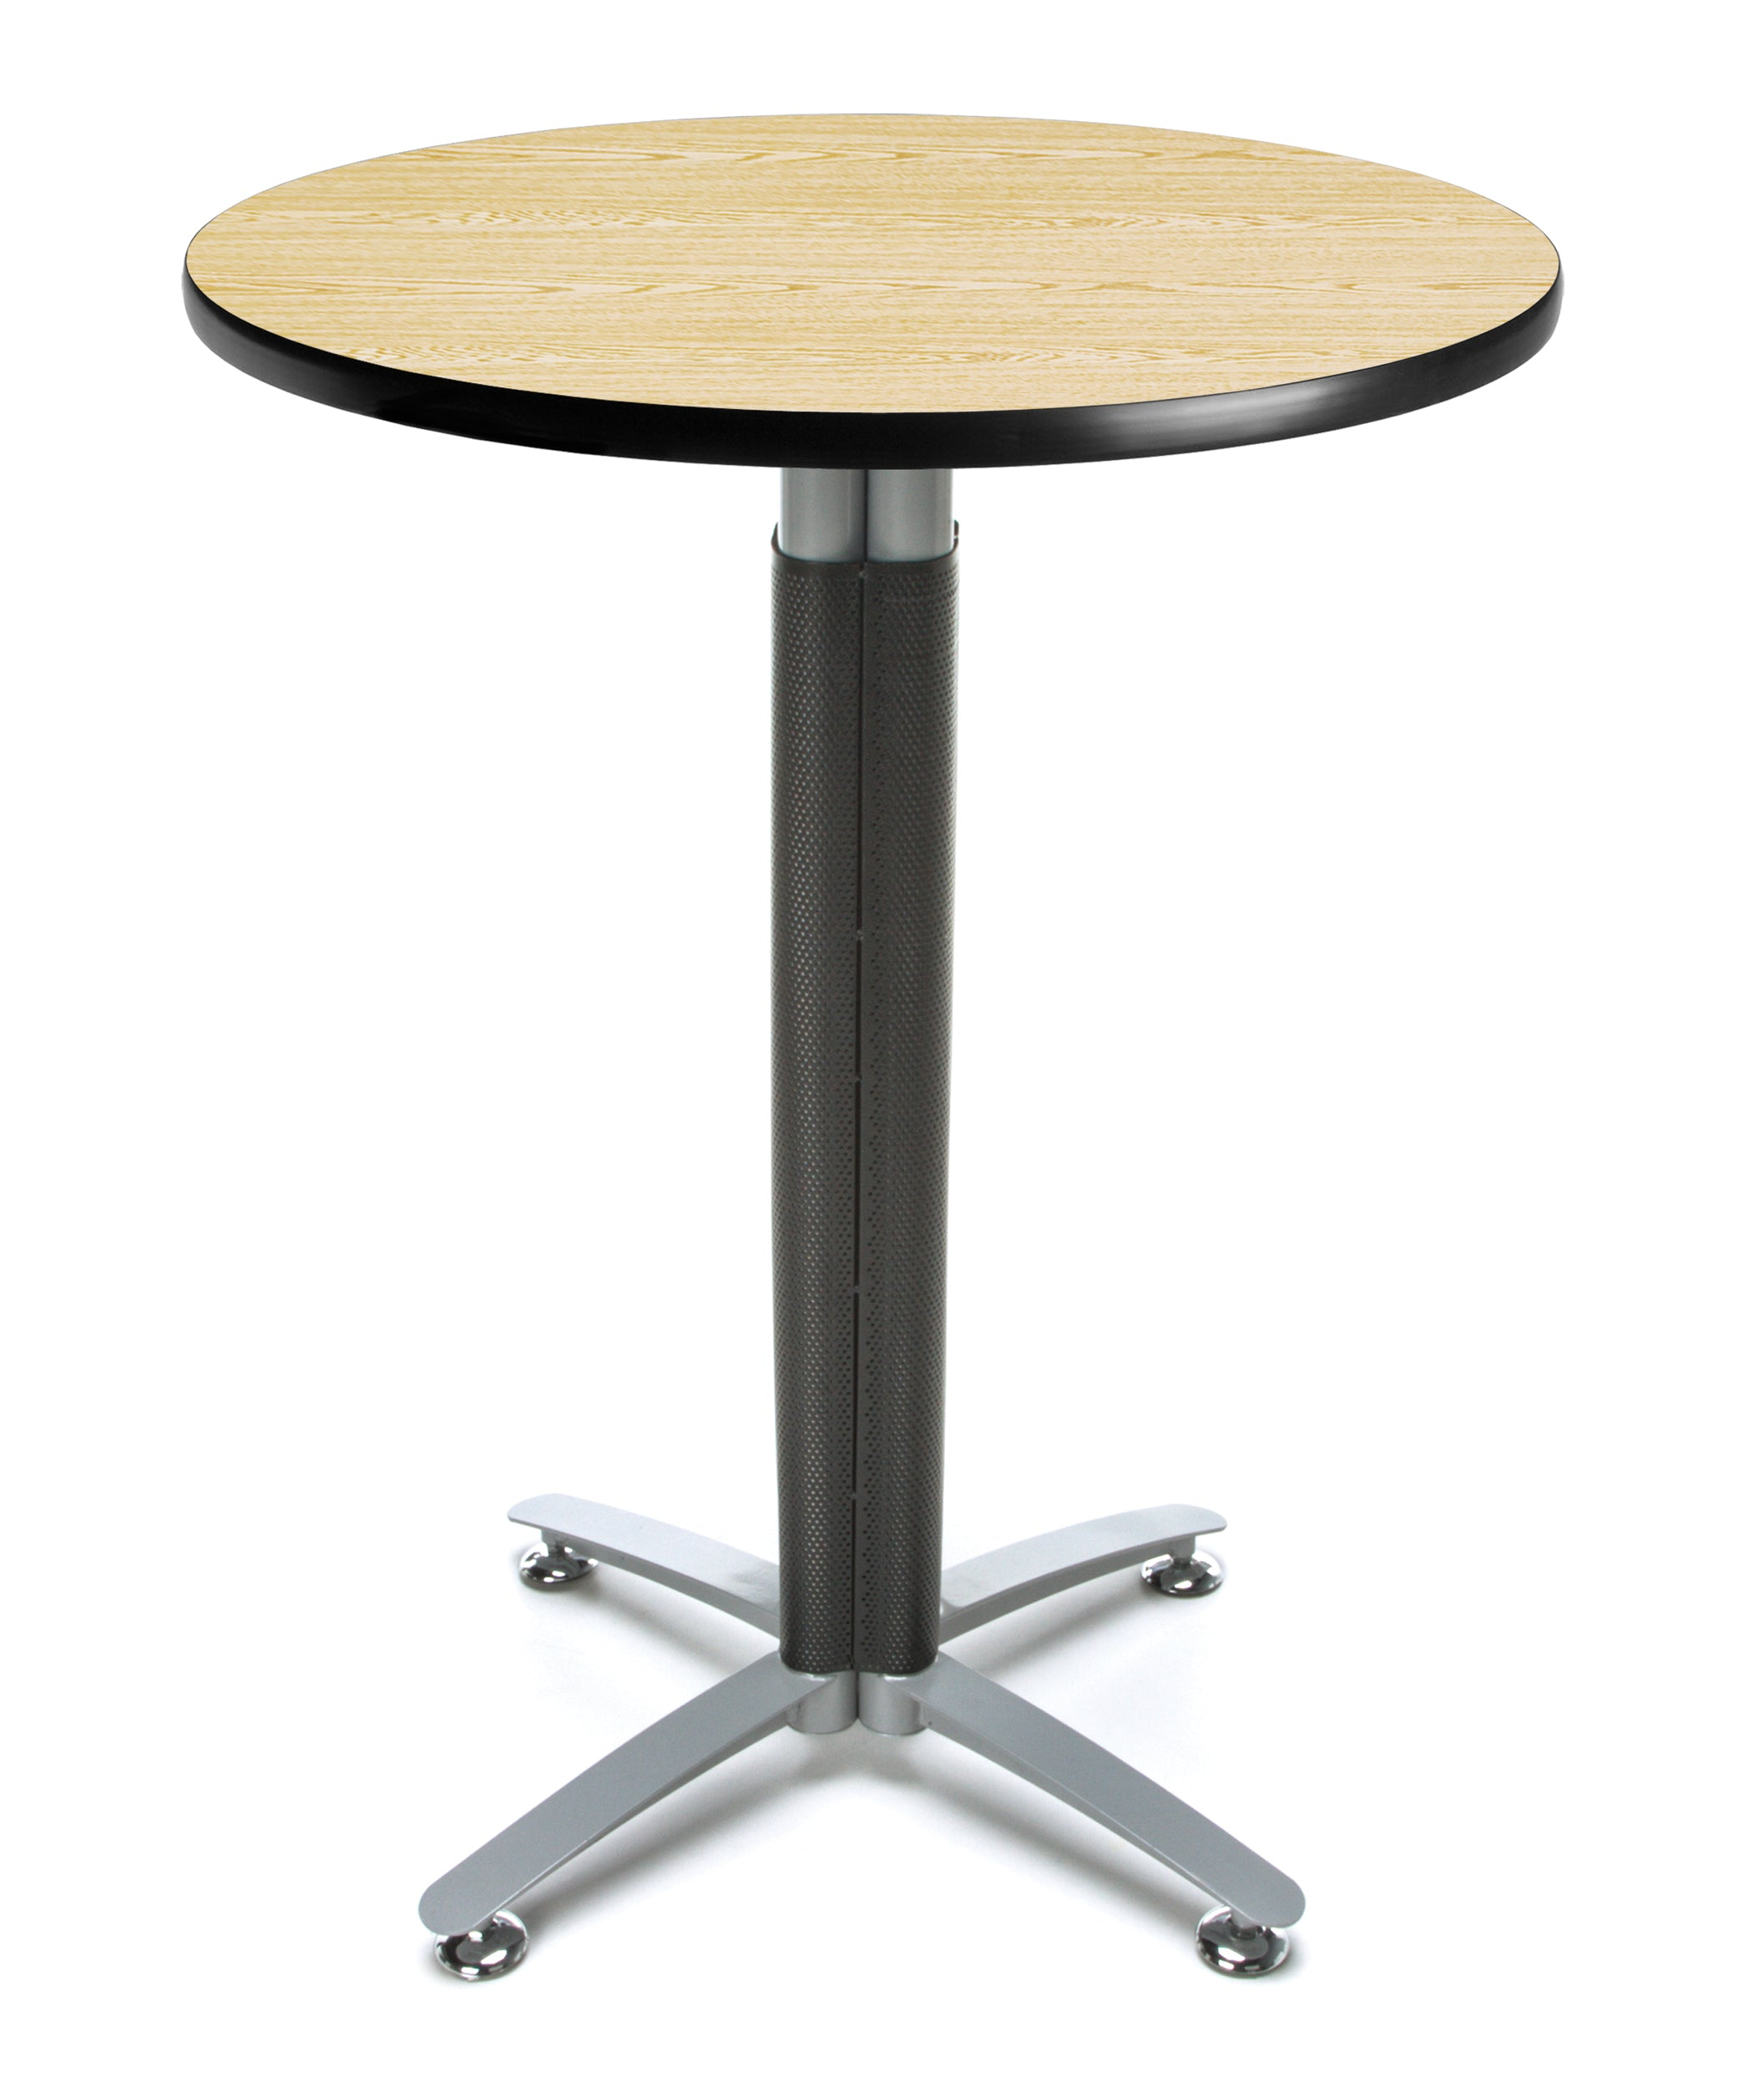 Ofminc Model CMT30RD 30 Inch Round Metal Mesh Base Cafe Table